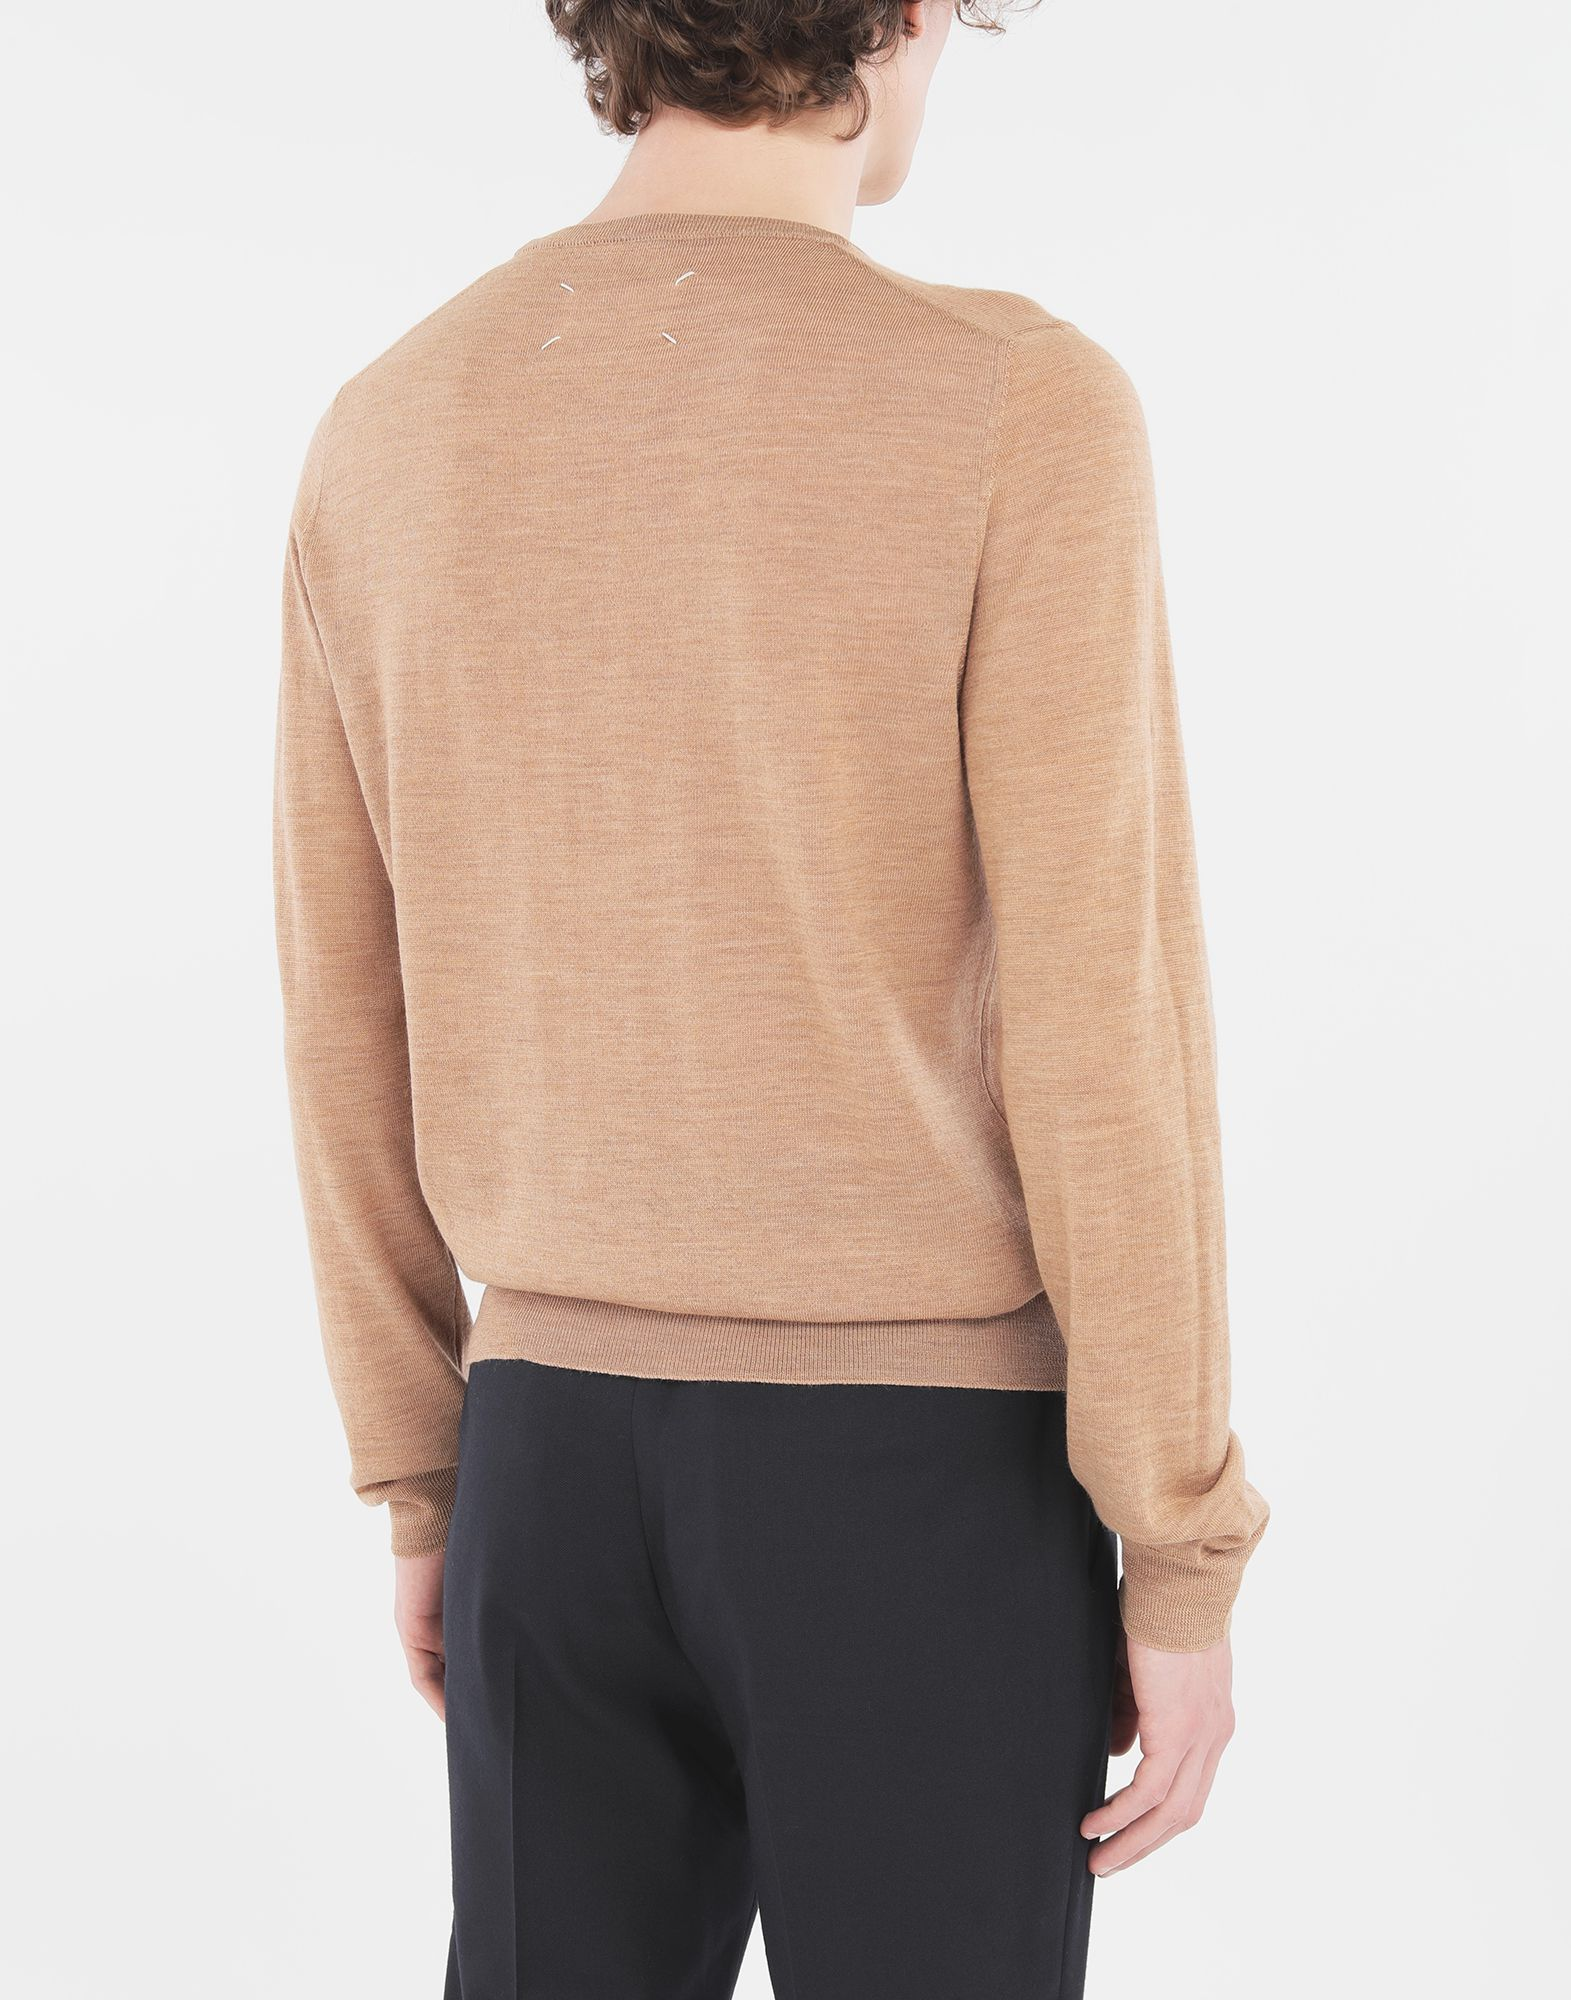 MAISON MARGIELA Wool sweater Crewneck Man d